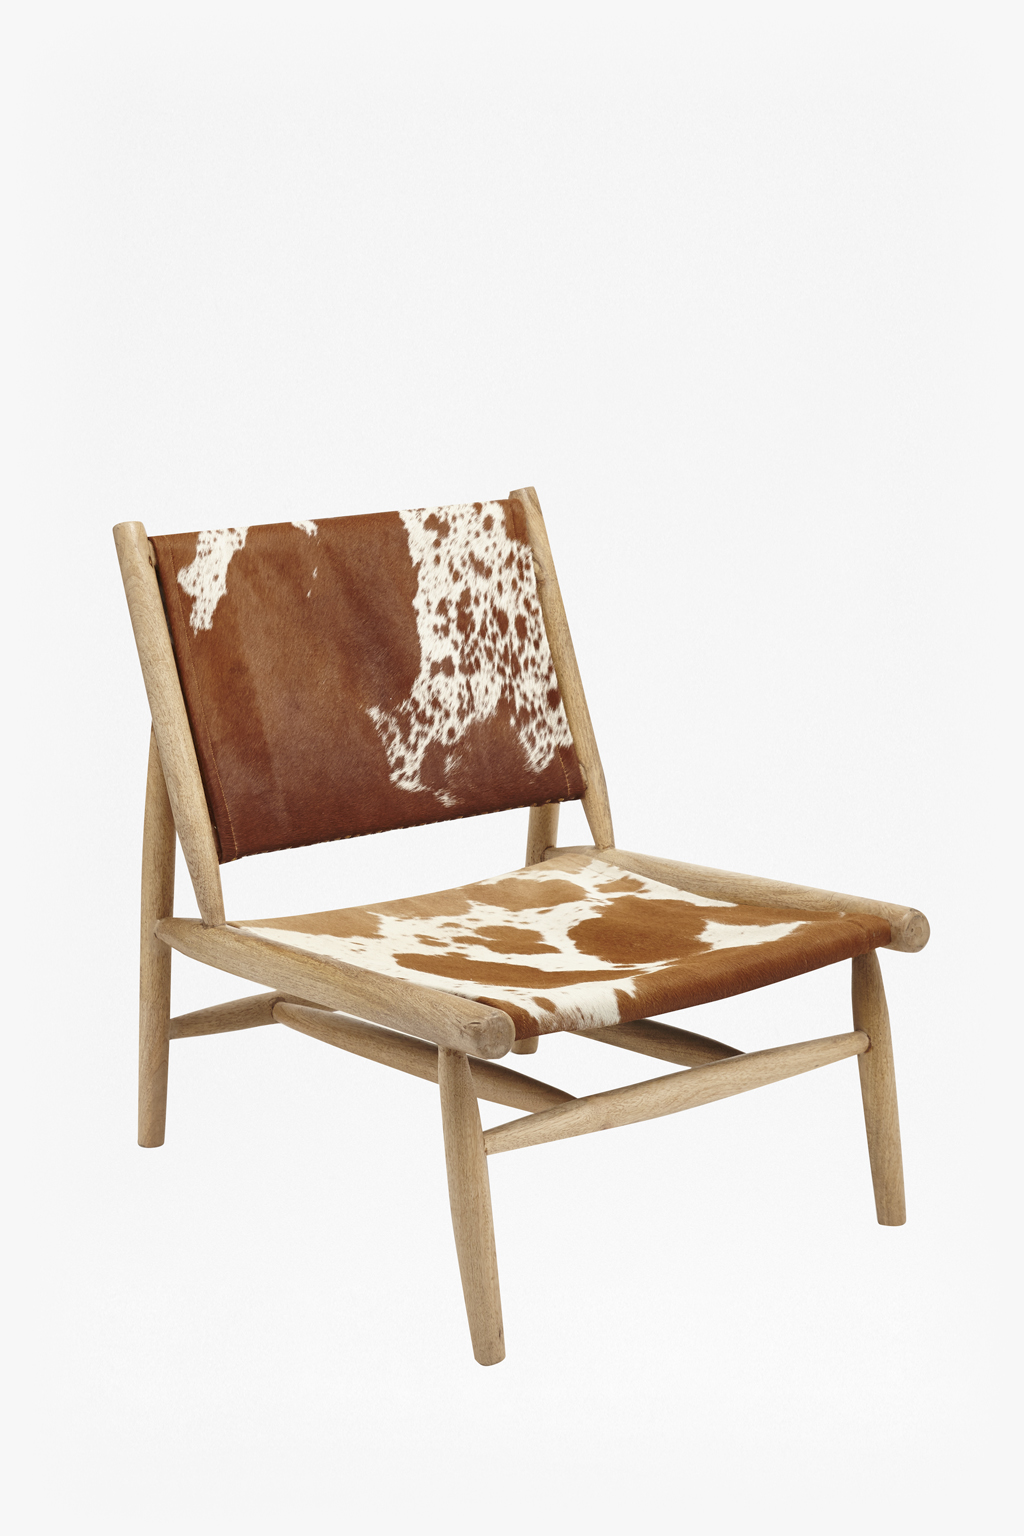 Cowhide leather chair loading images